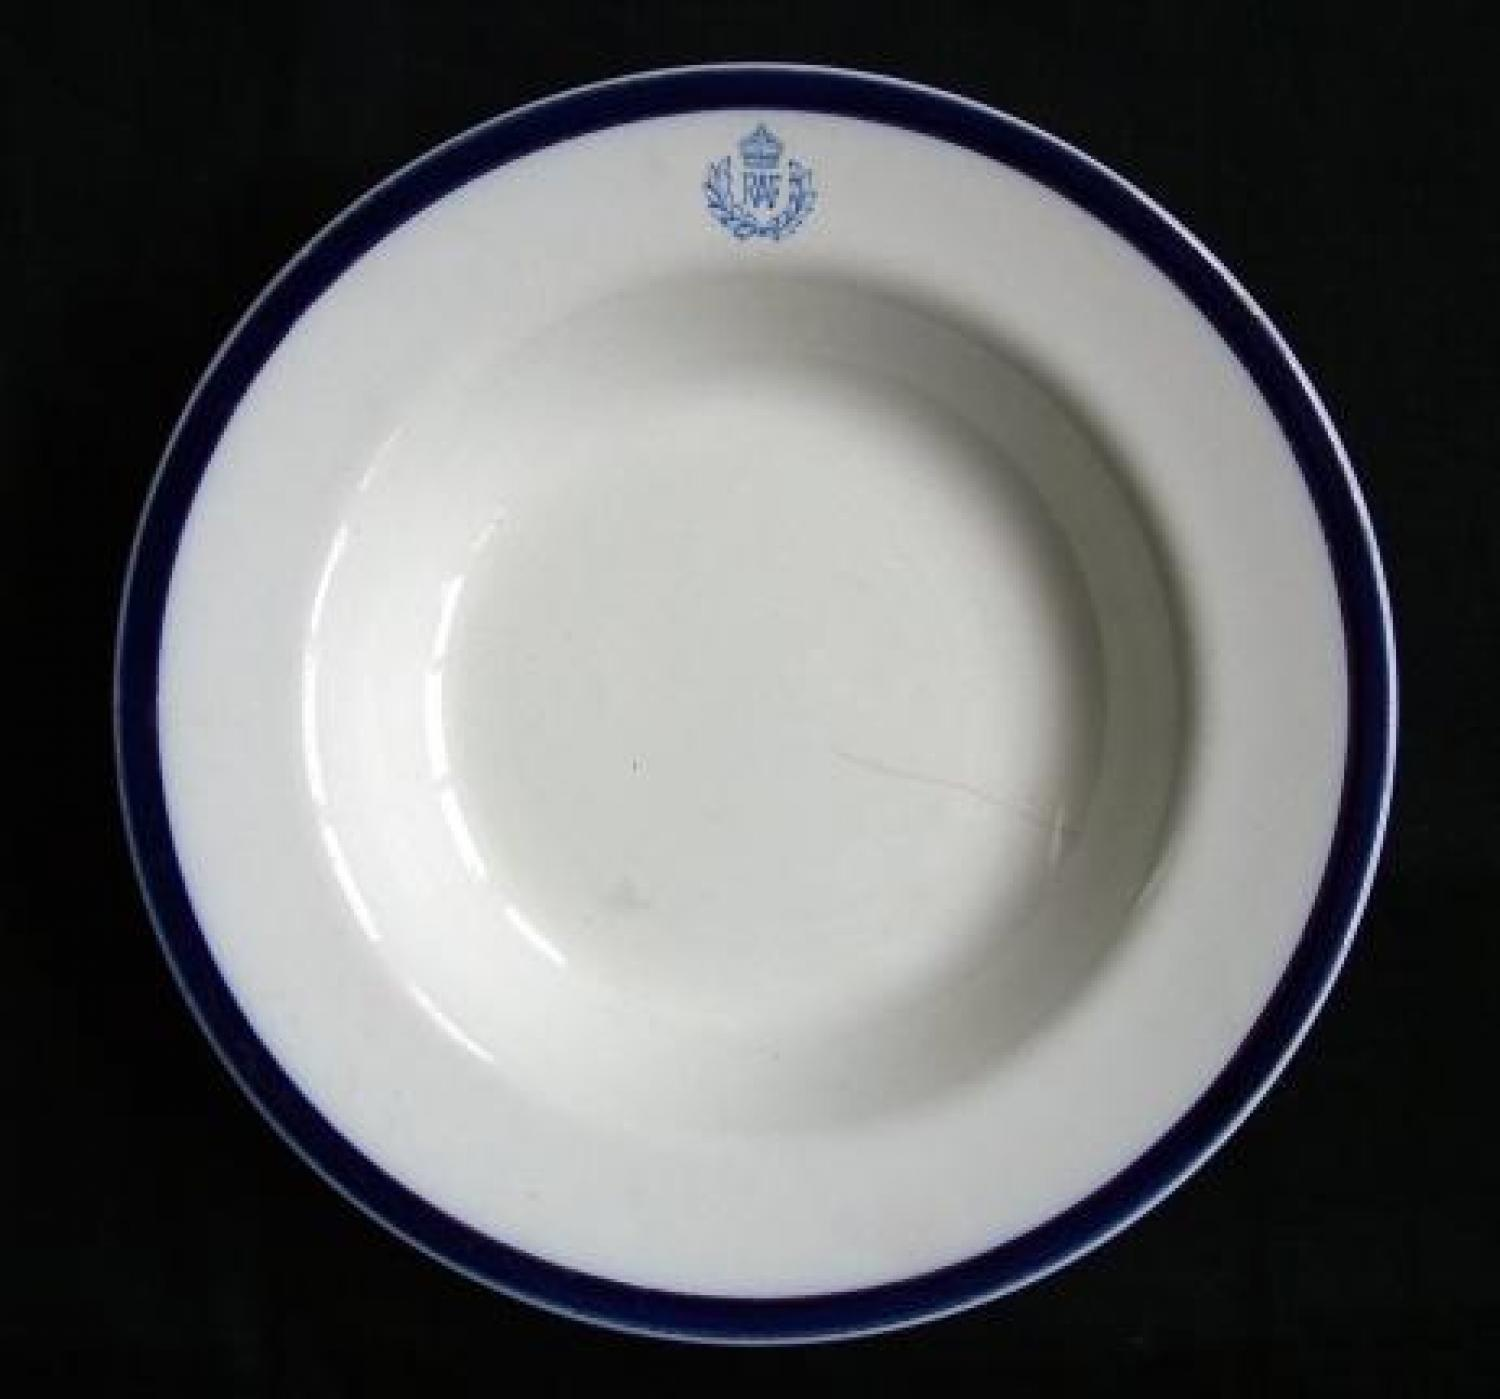 R.A.F. Officers' Mess Soup Bowl